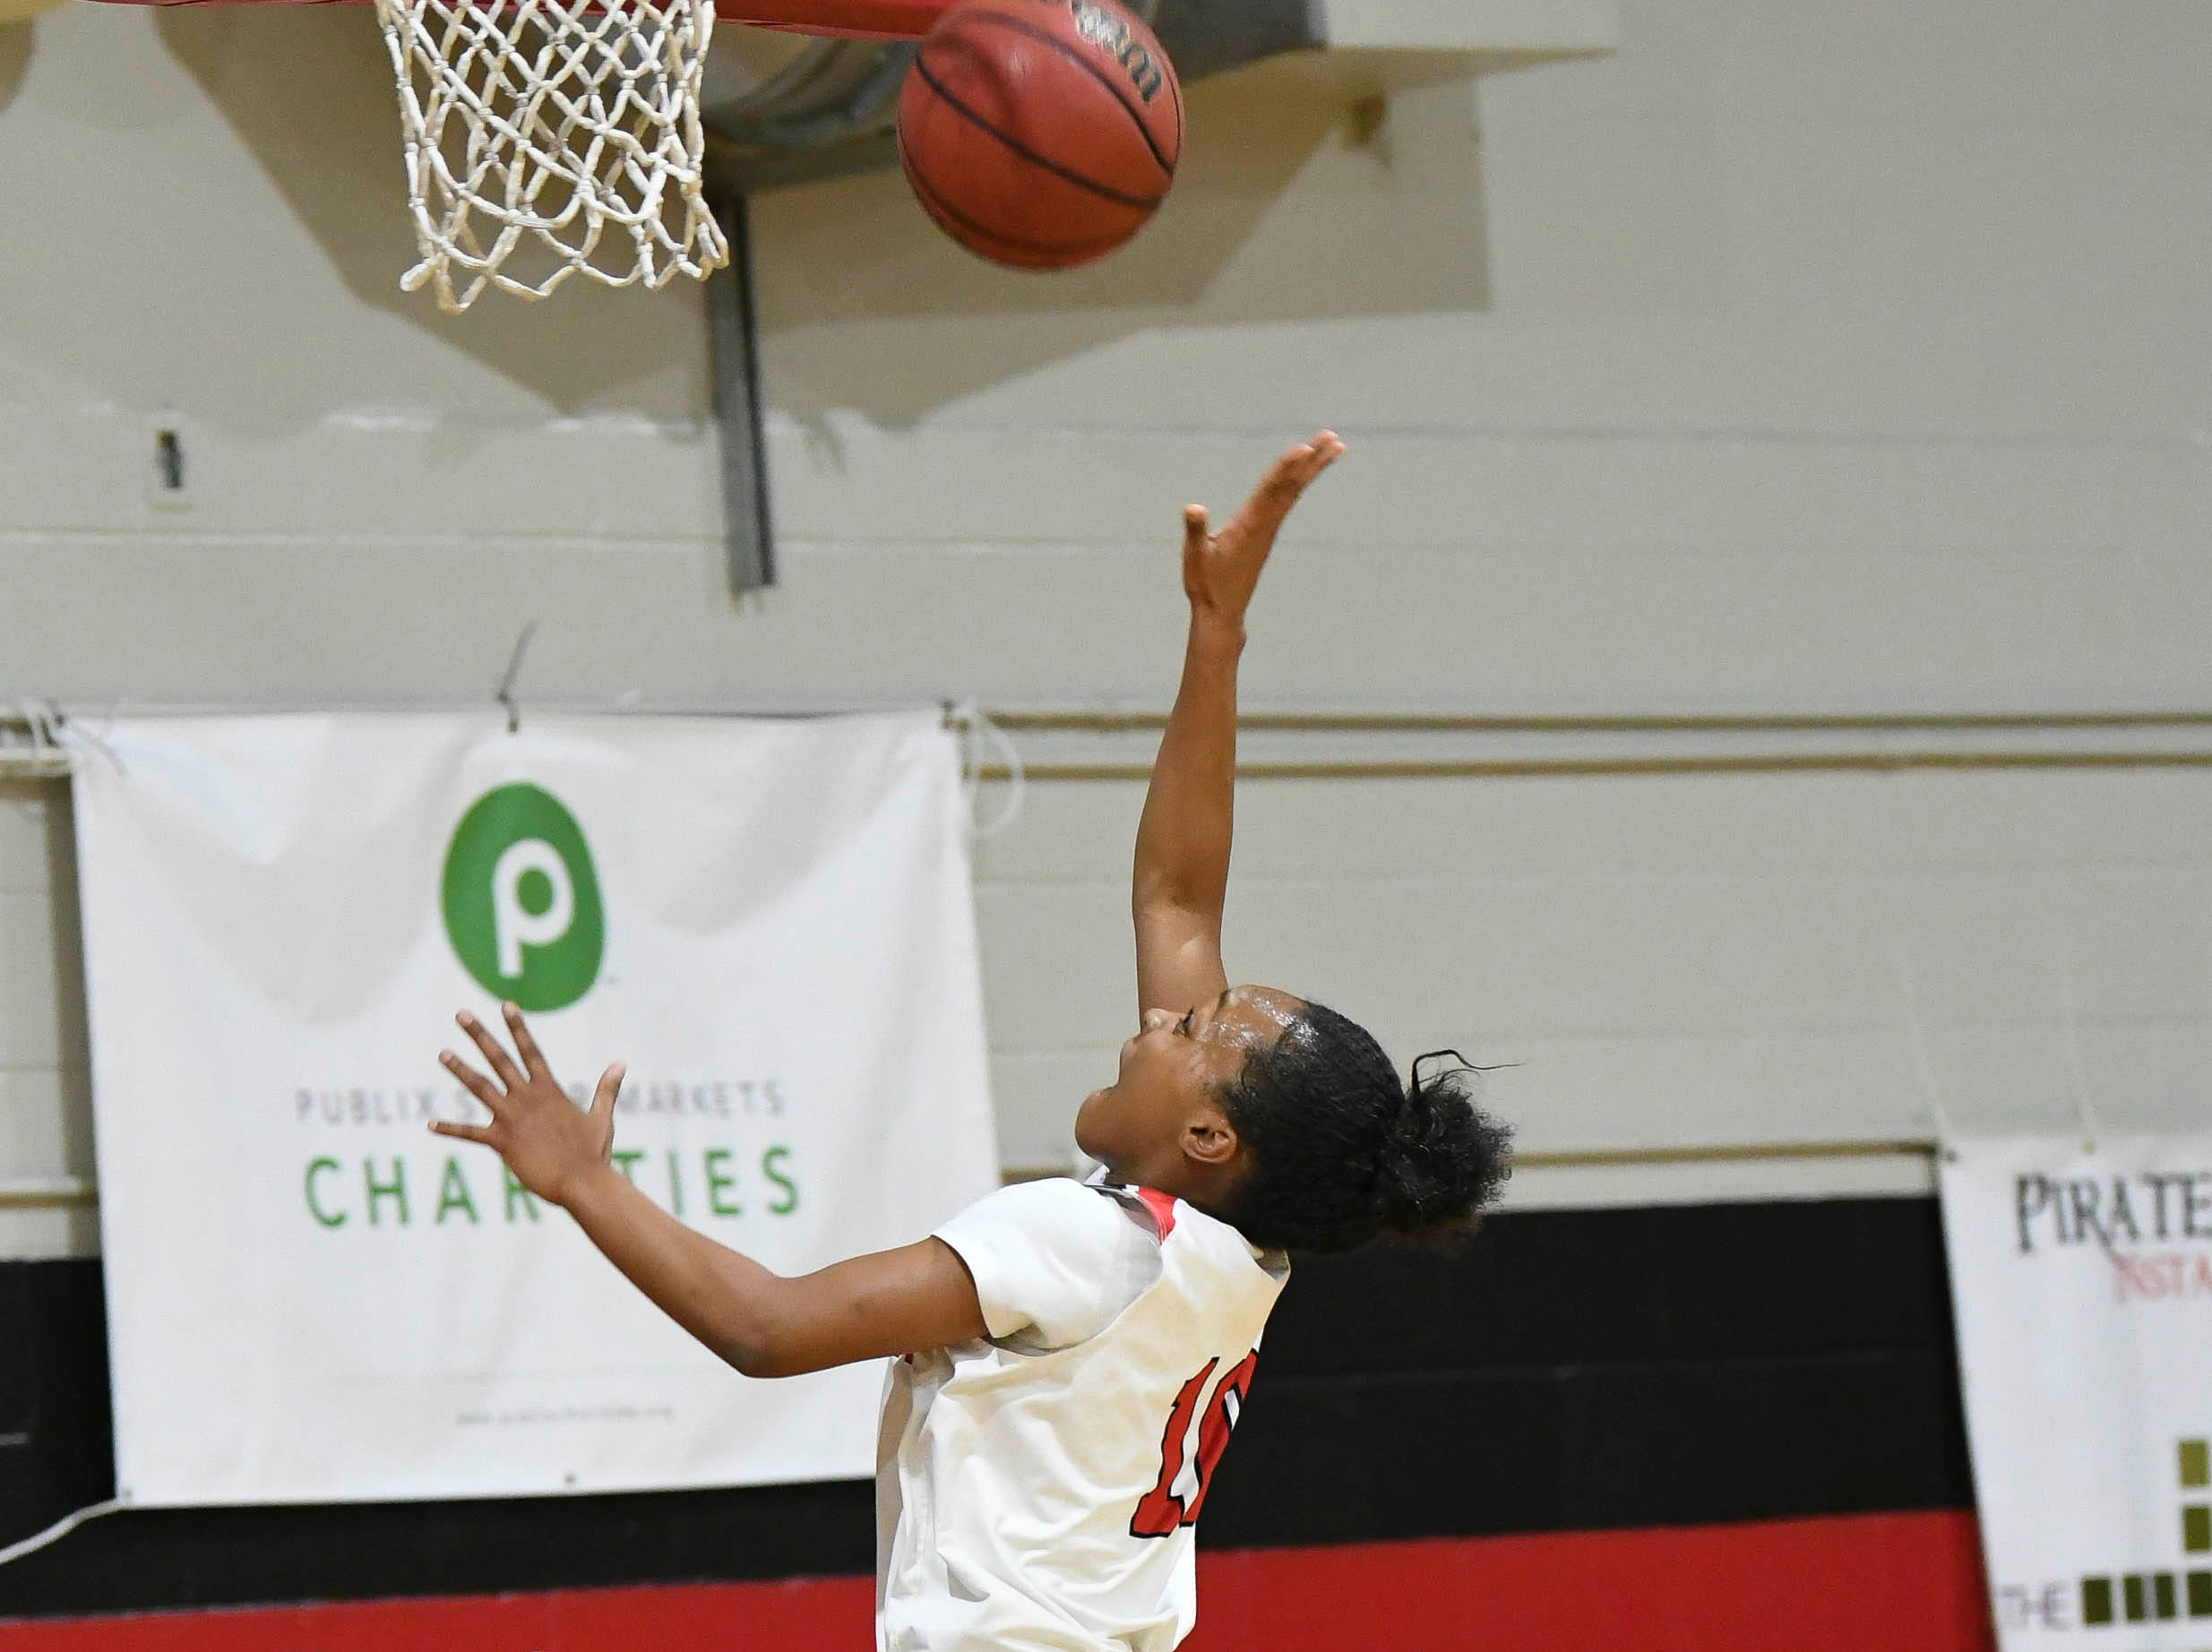 Palm Bay's Siamara Alfonso gets an uncontested shot during Thursday's game.